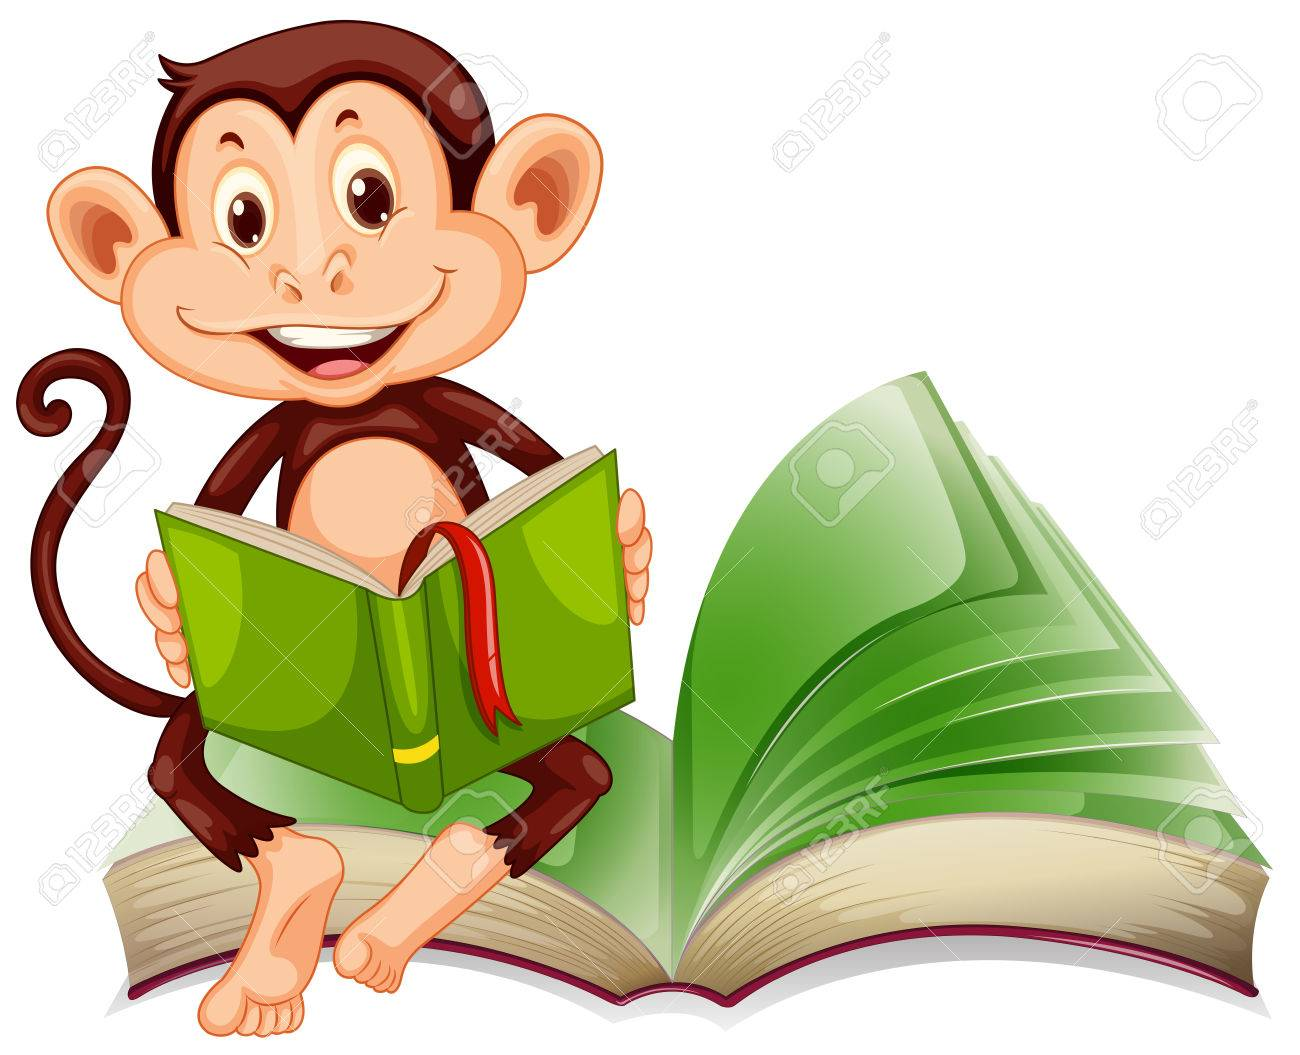 Little monkey sitting and reading a book illustration.